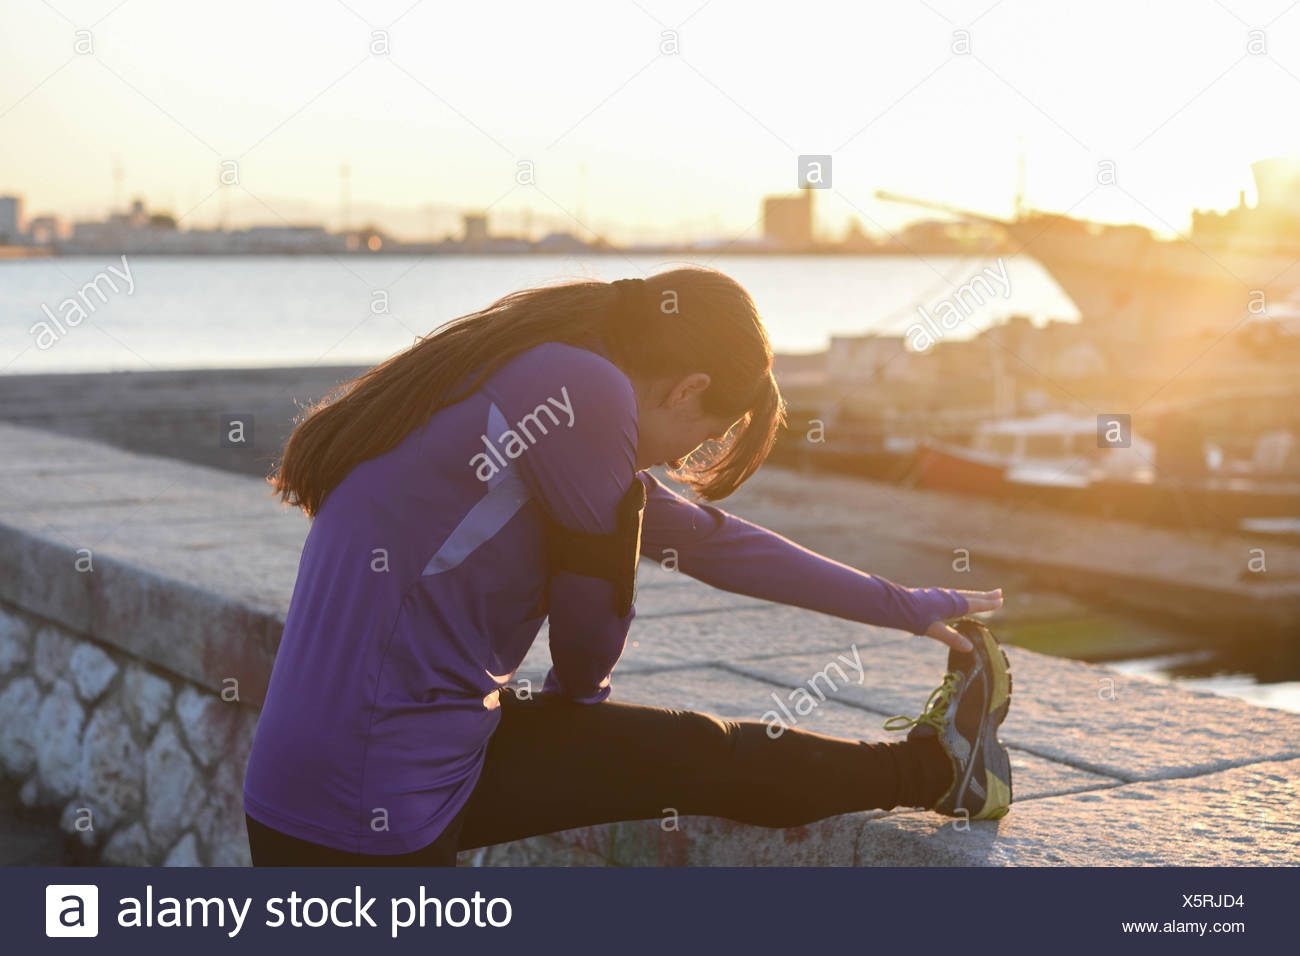 Young woman stretching her leg on a wall at sunset - Stock Image